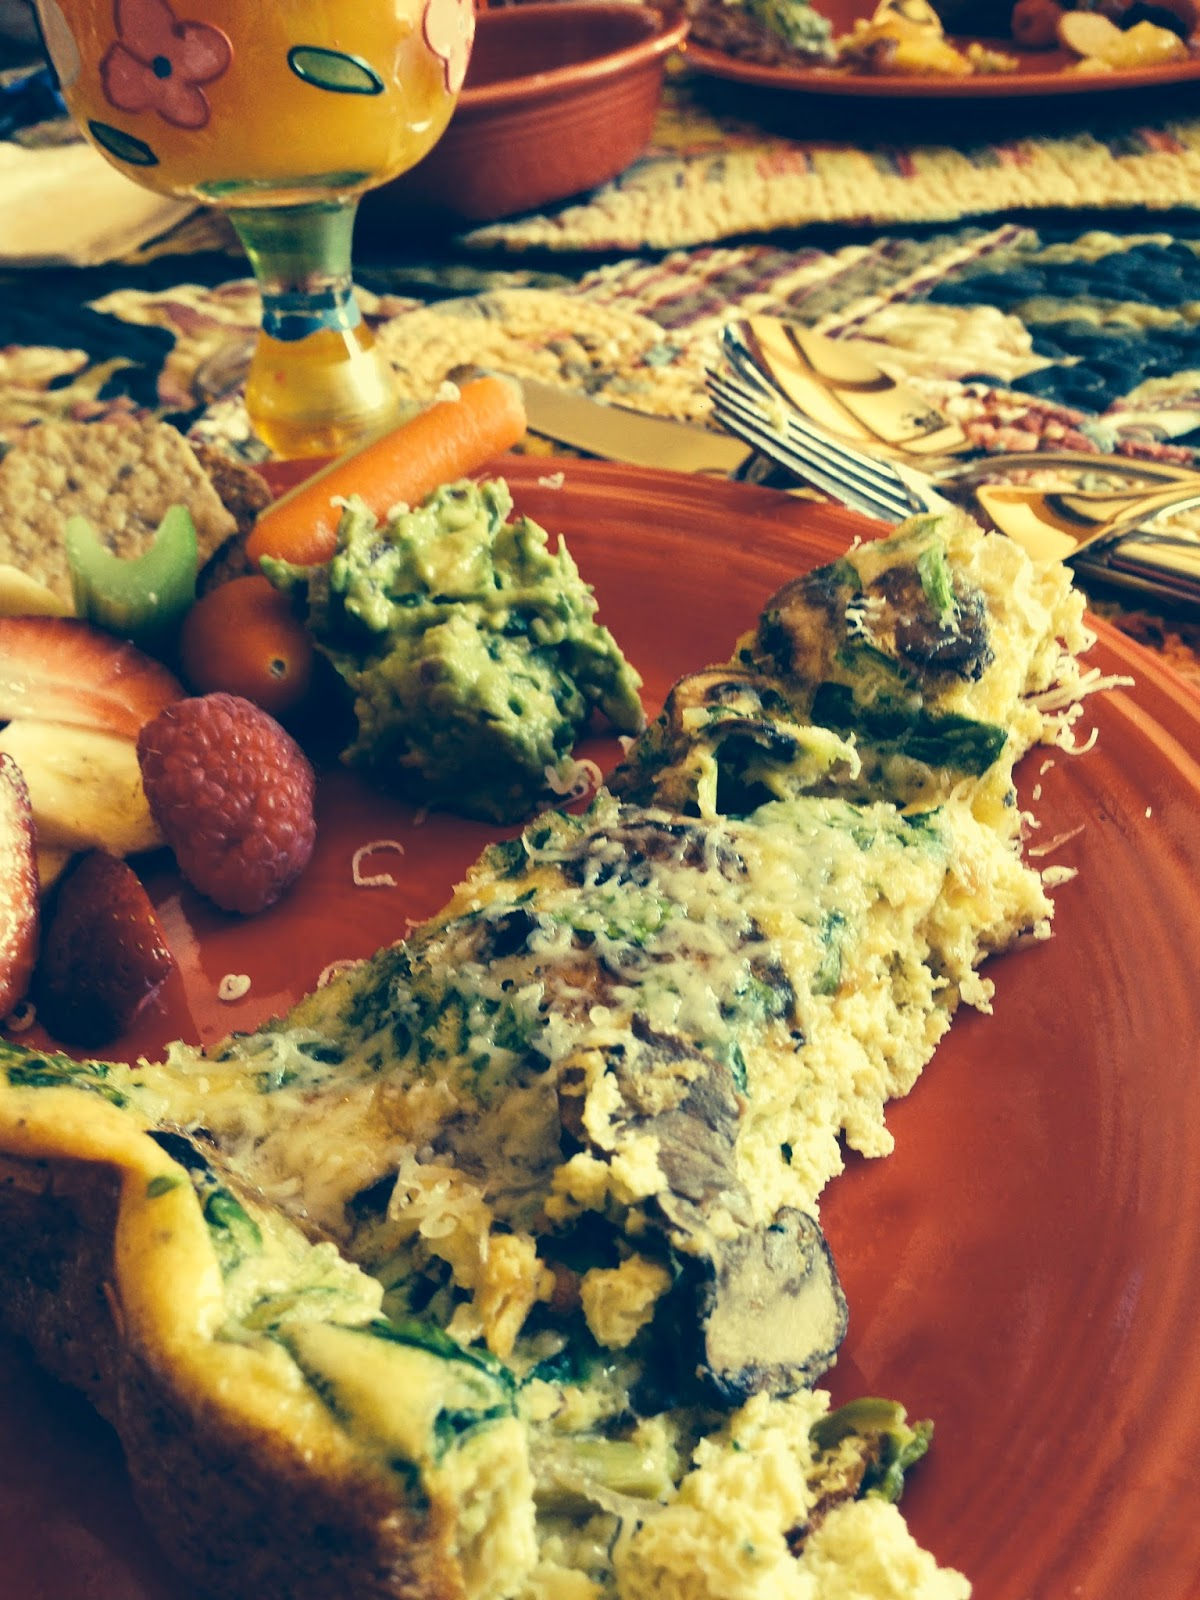 Cheesy Spinach and Mushroom Frittata! #brunch #breakfast #food #glutenfree #paleo #beautybeyondbones #edrecovery